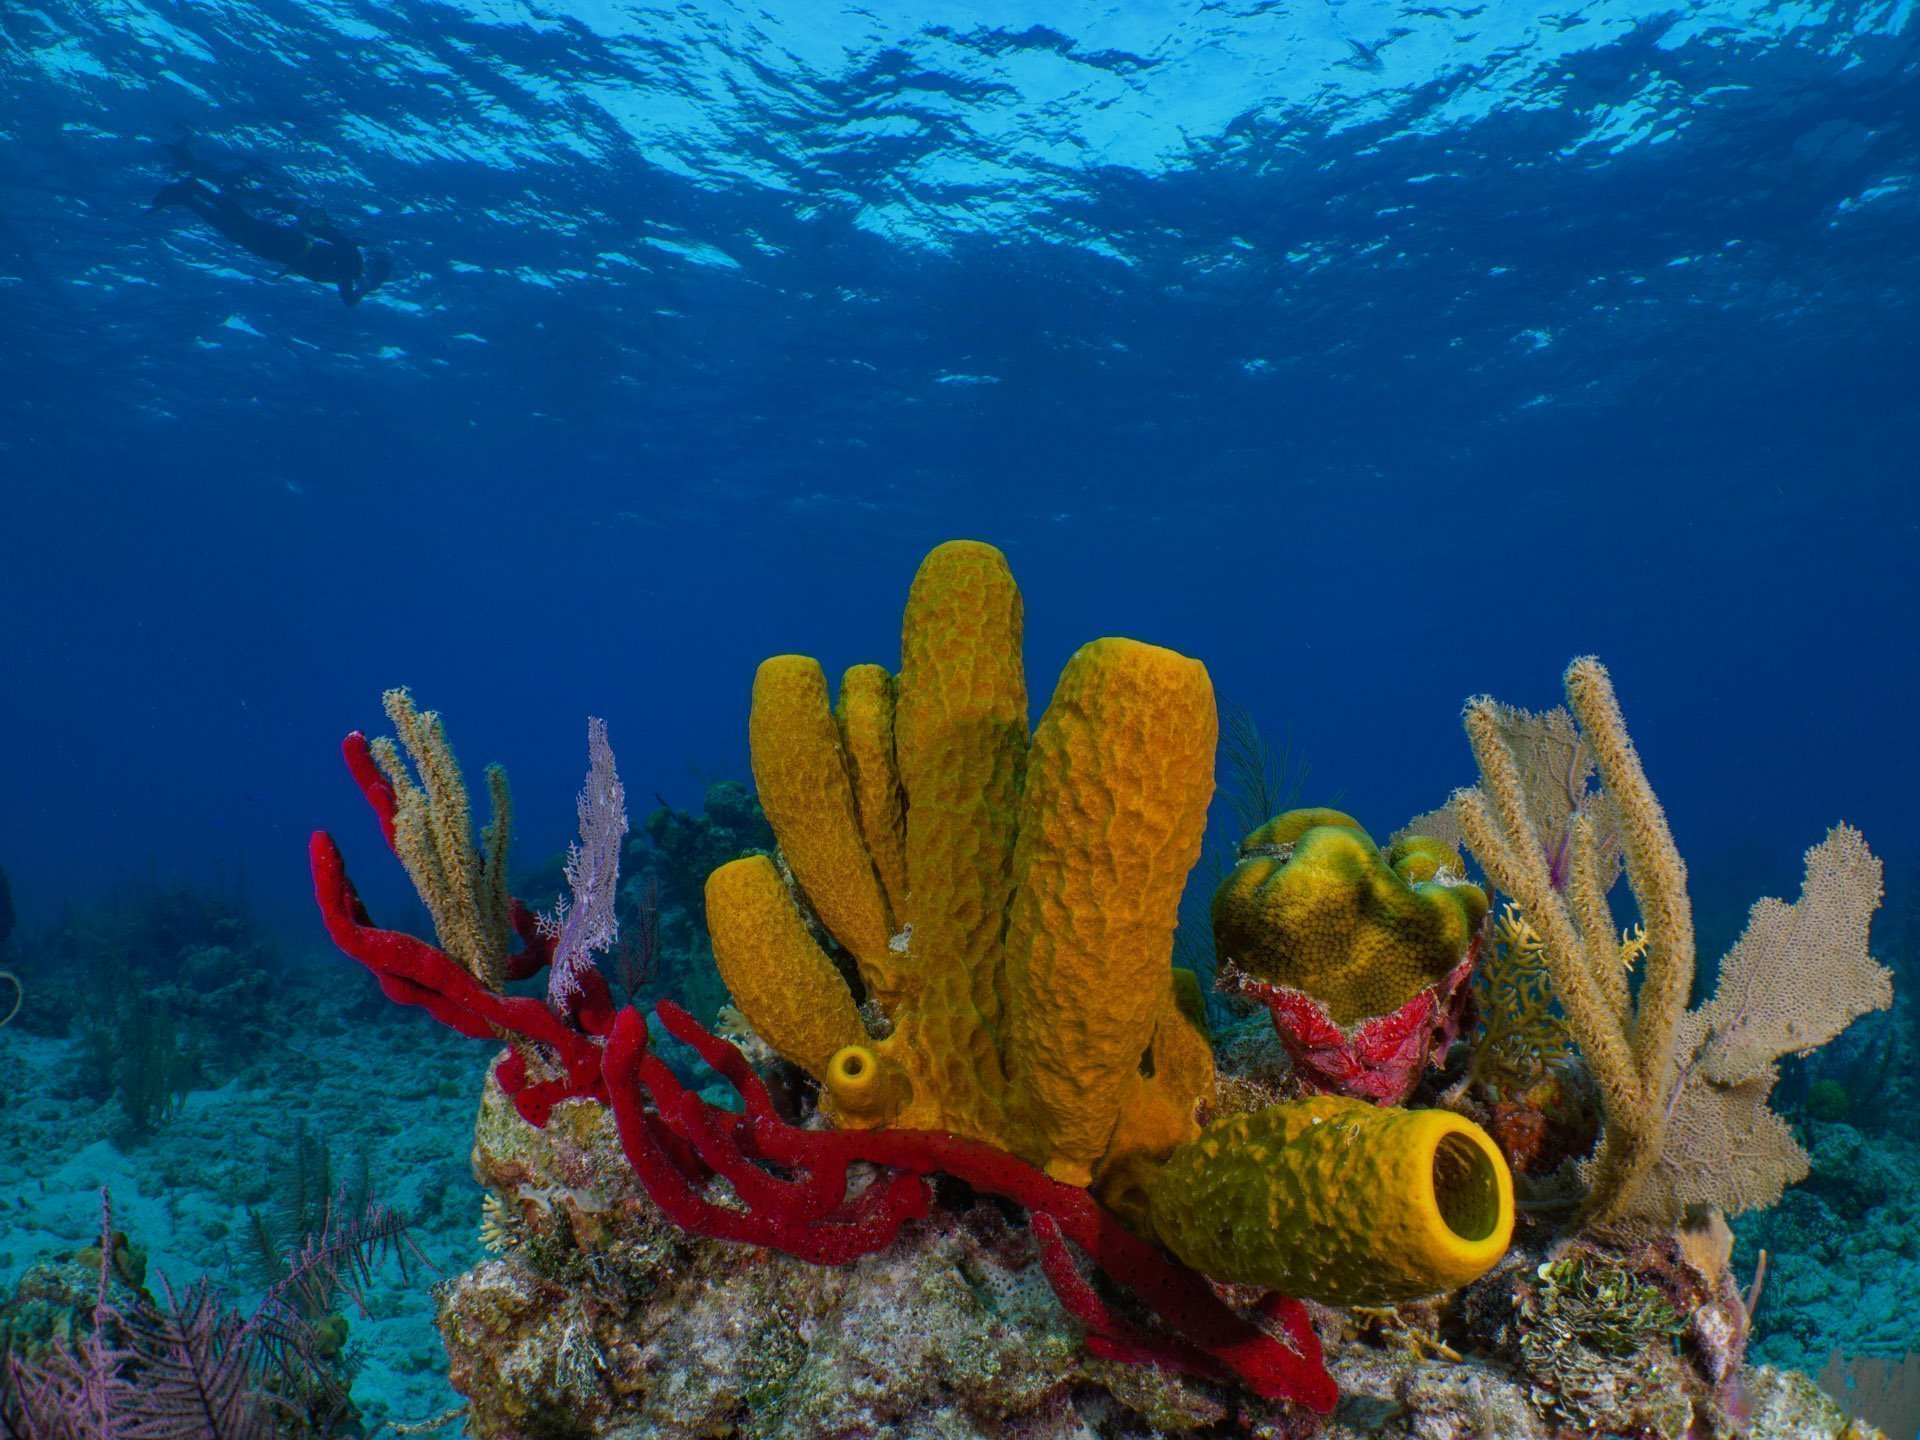 Colorful sponges covering the reef